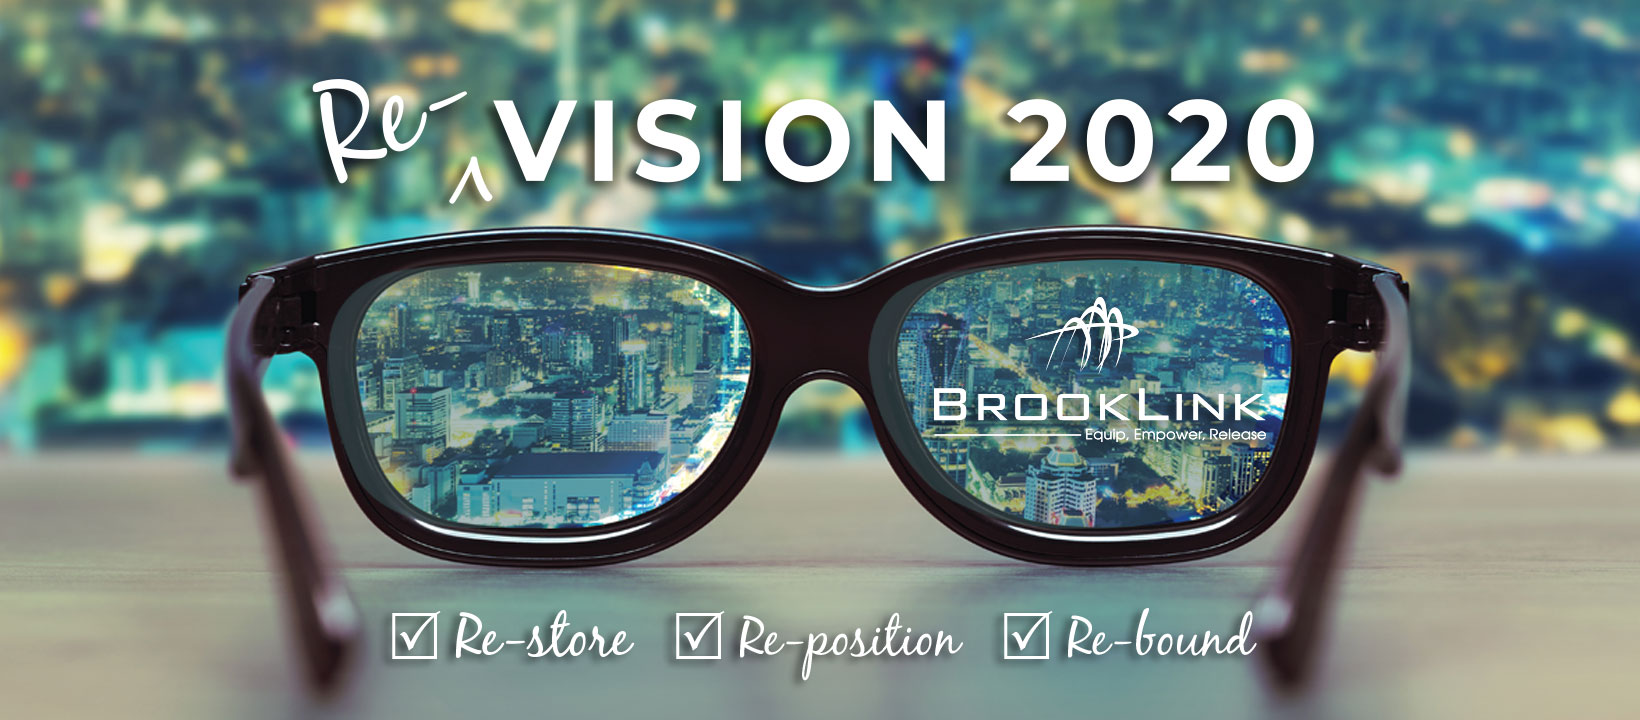 Re-Vision 2020